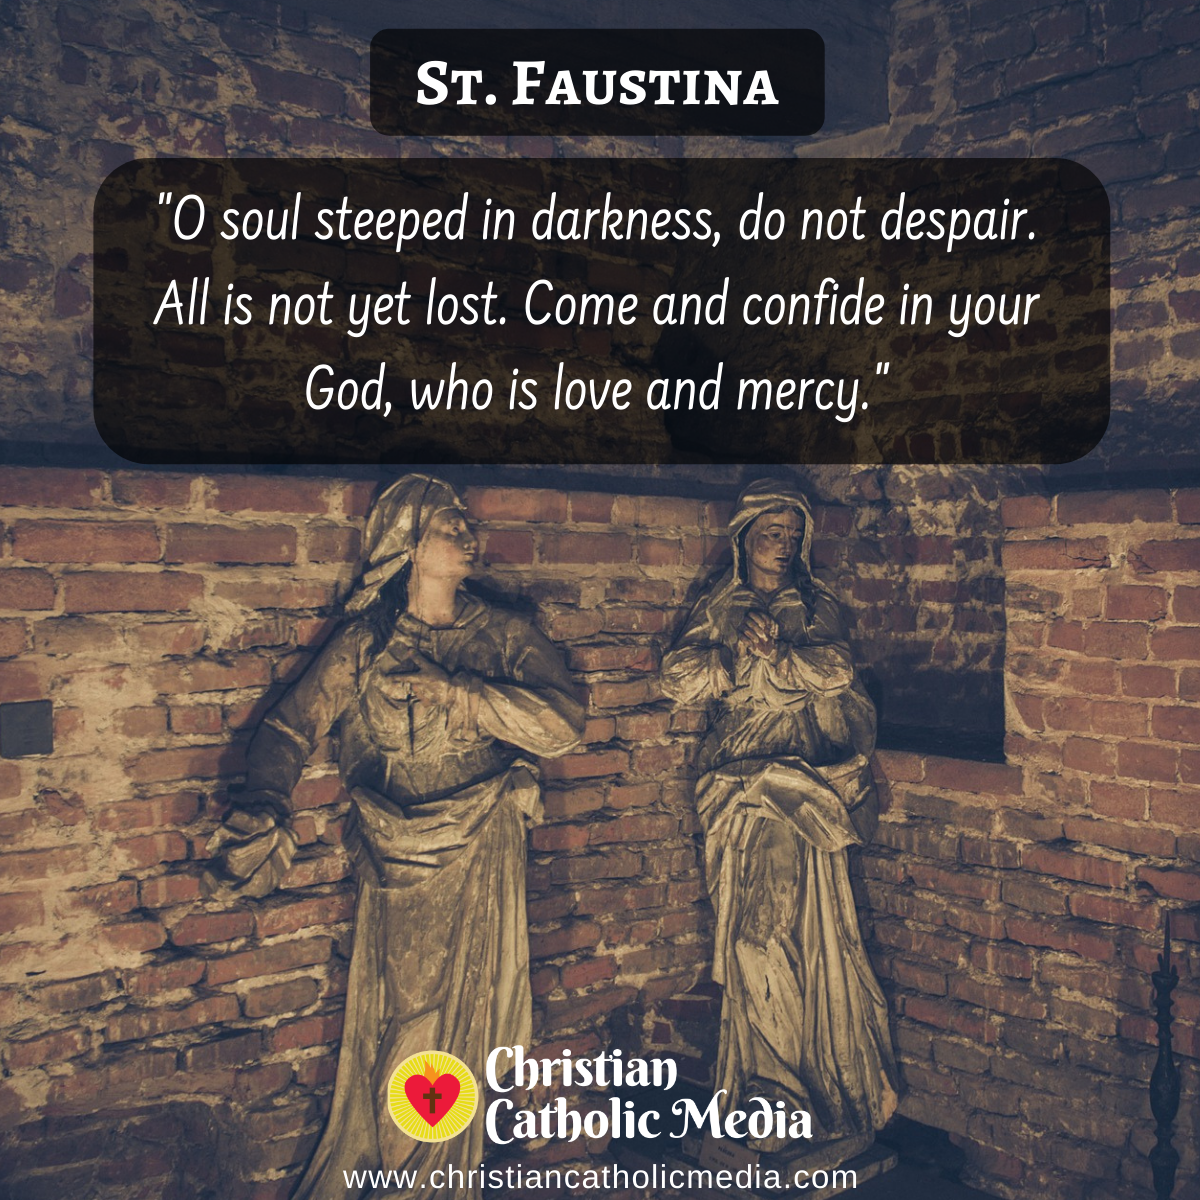 St. Faustina - Tuesday July 20, 2021